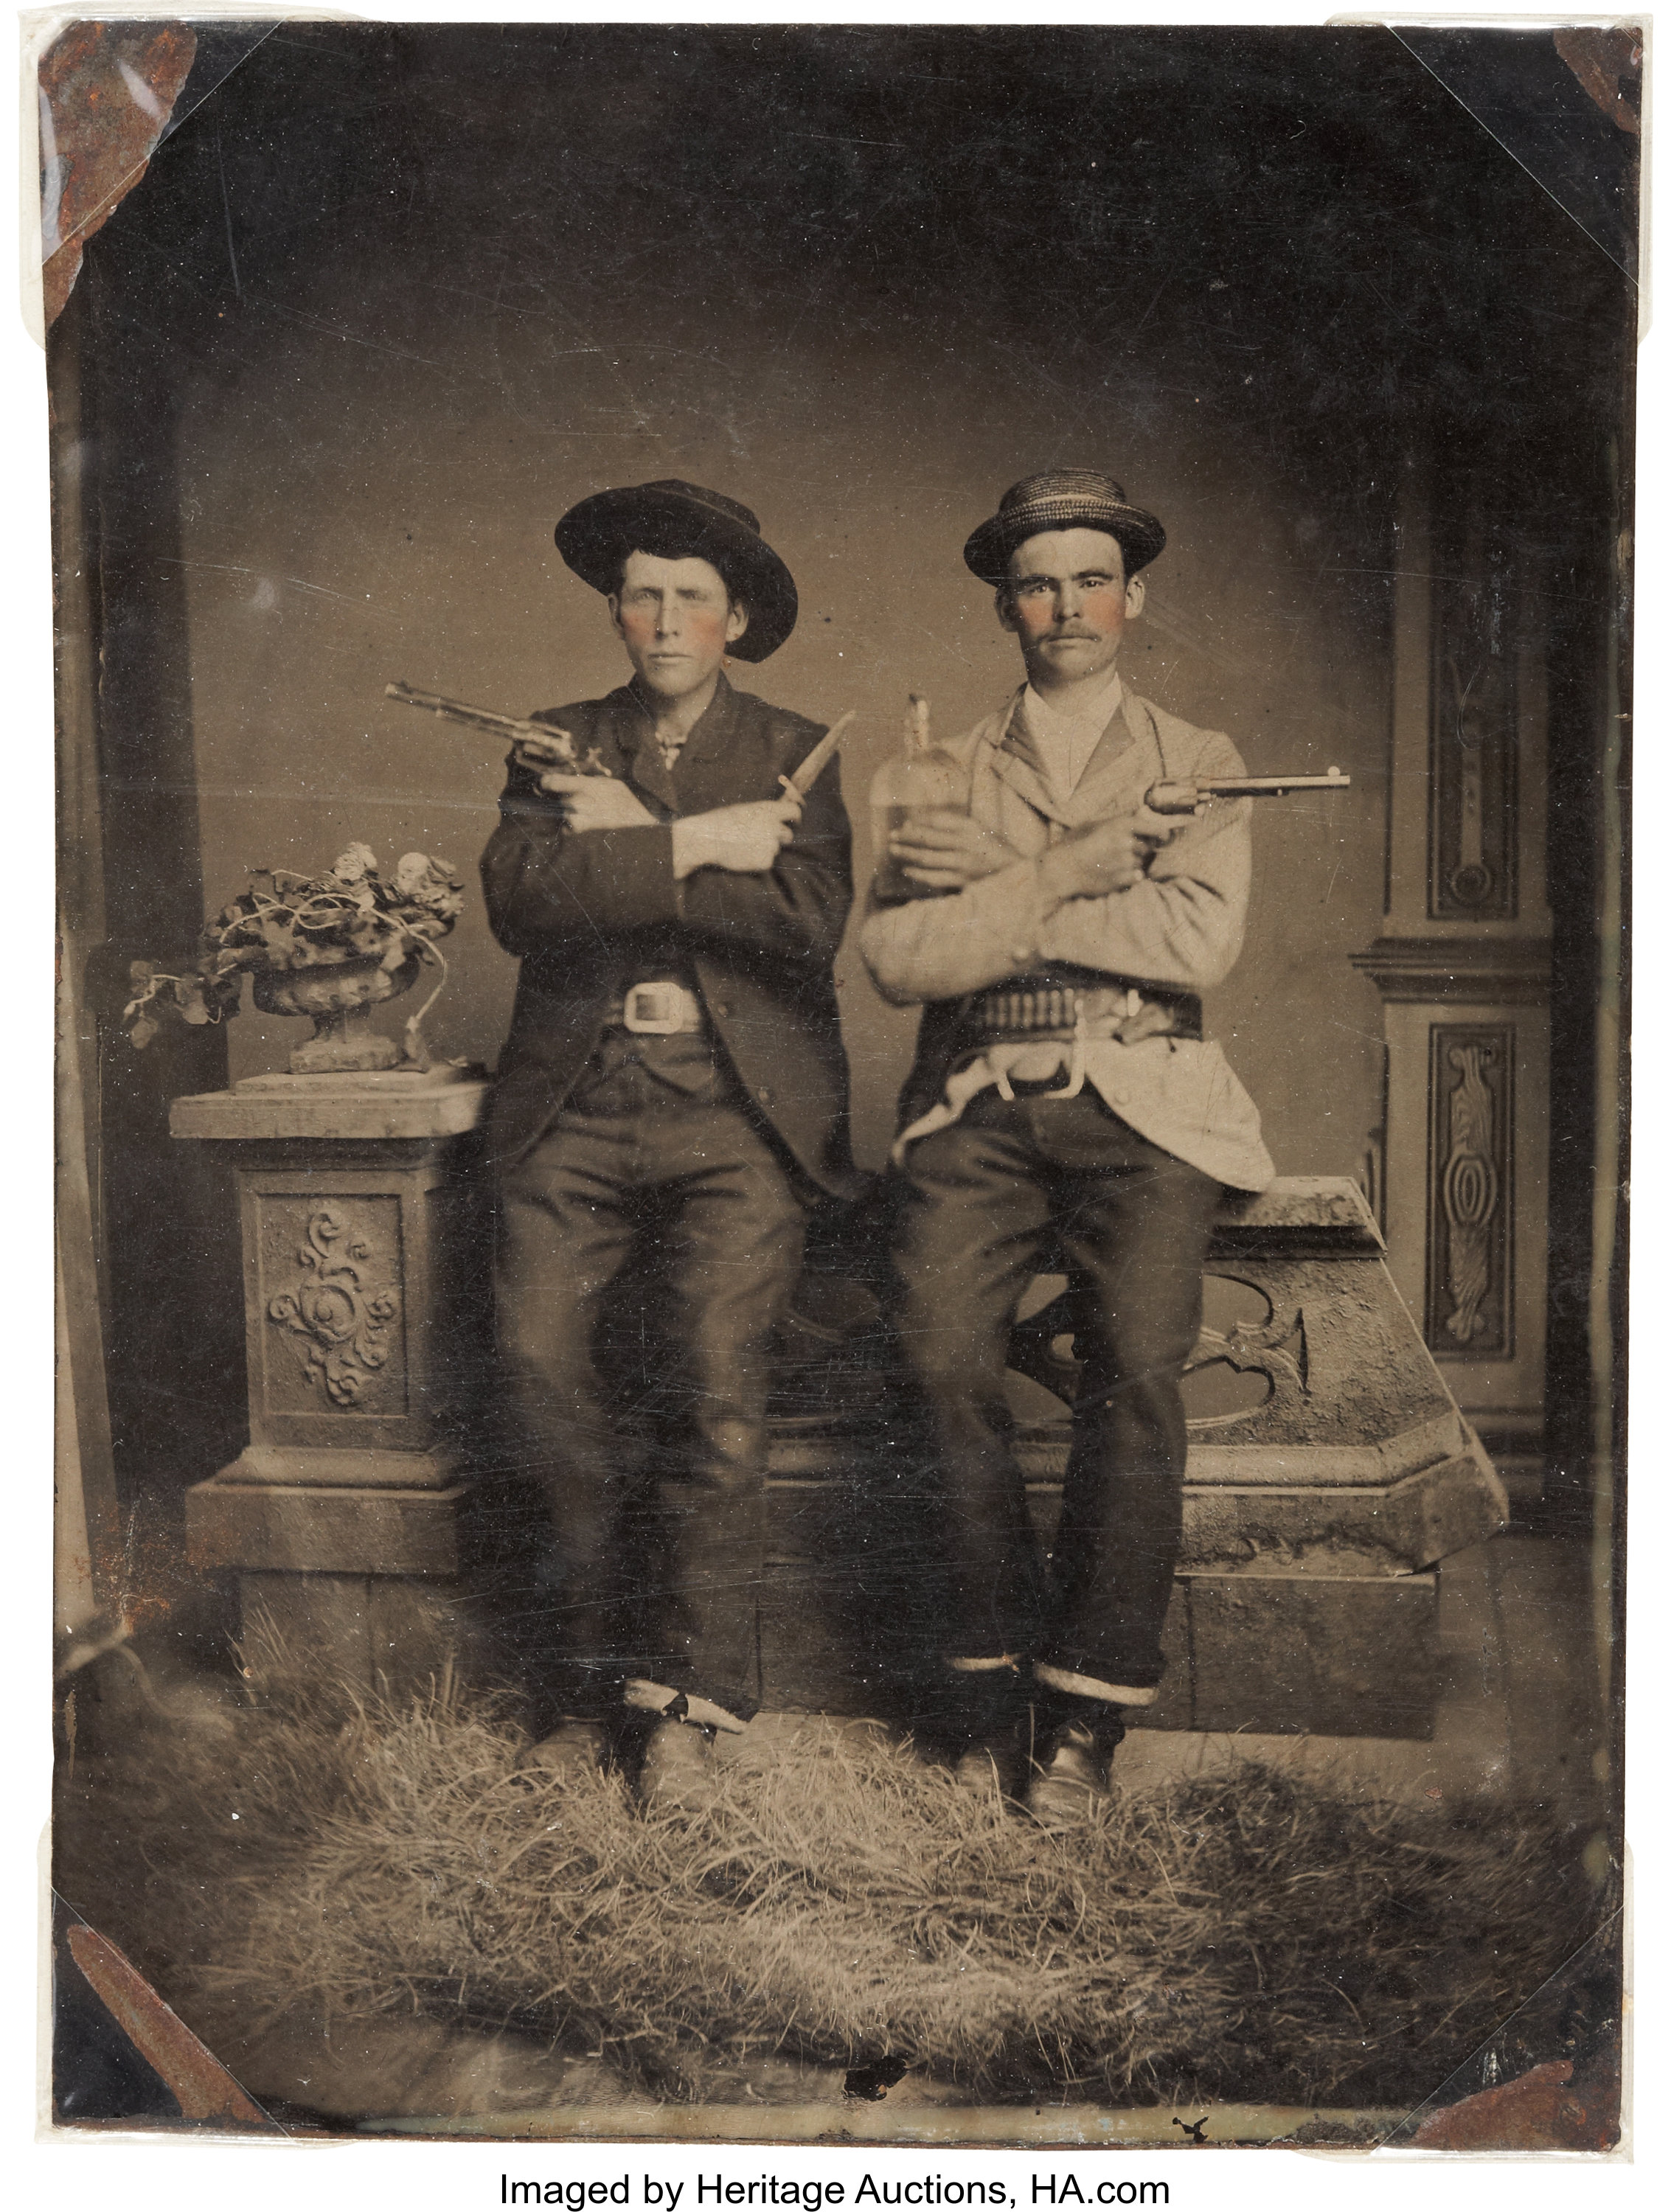 Great Half Plate Tintype Of Two Well Armed Western Gents Circa Lot 52197 Heritage Auctions Success full plate armor +10 — 1 pcs. great half plate tintype of two well armed western gents circa lot 52197 heritage auctions